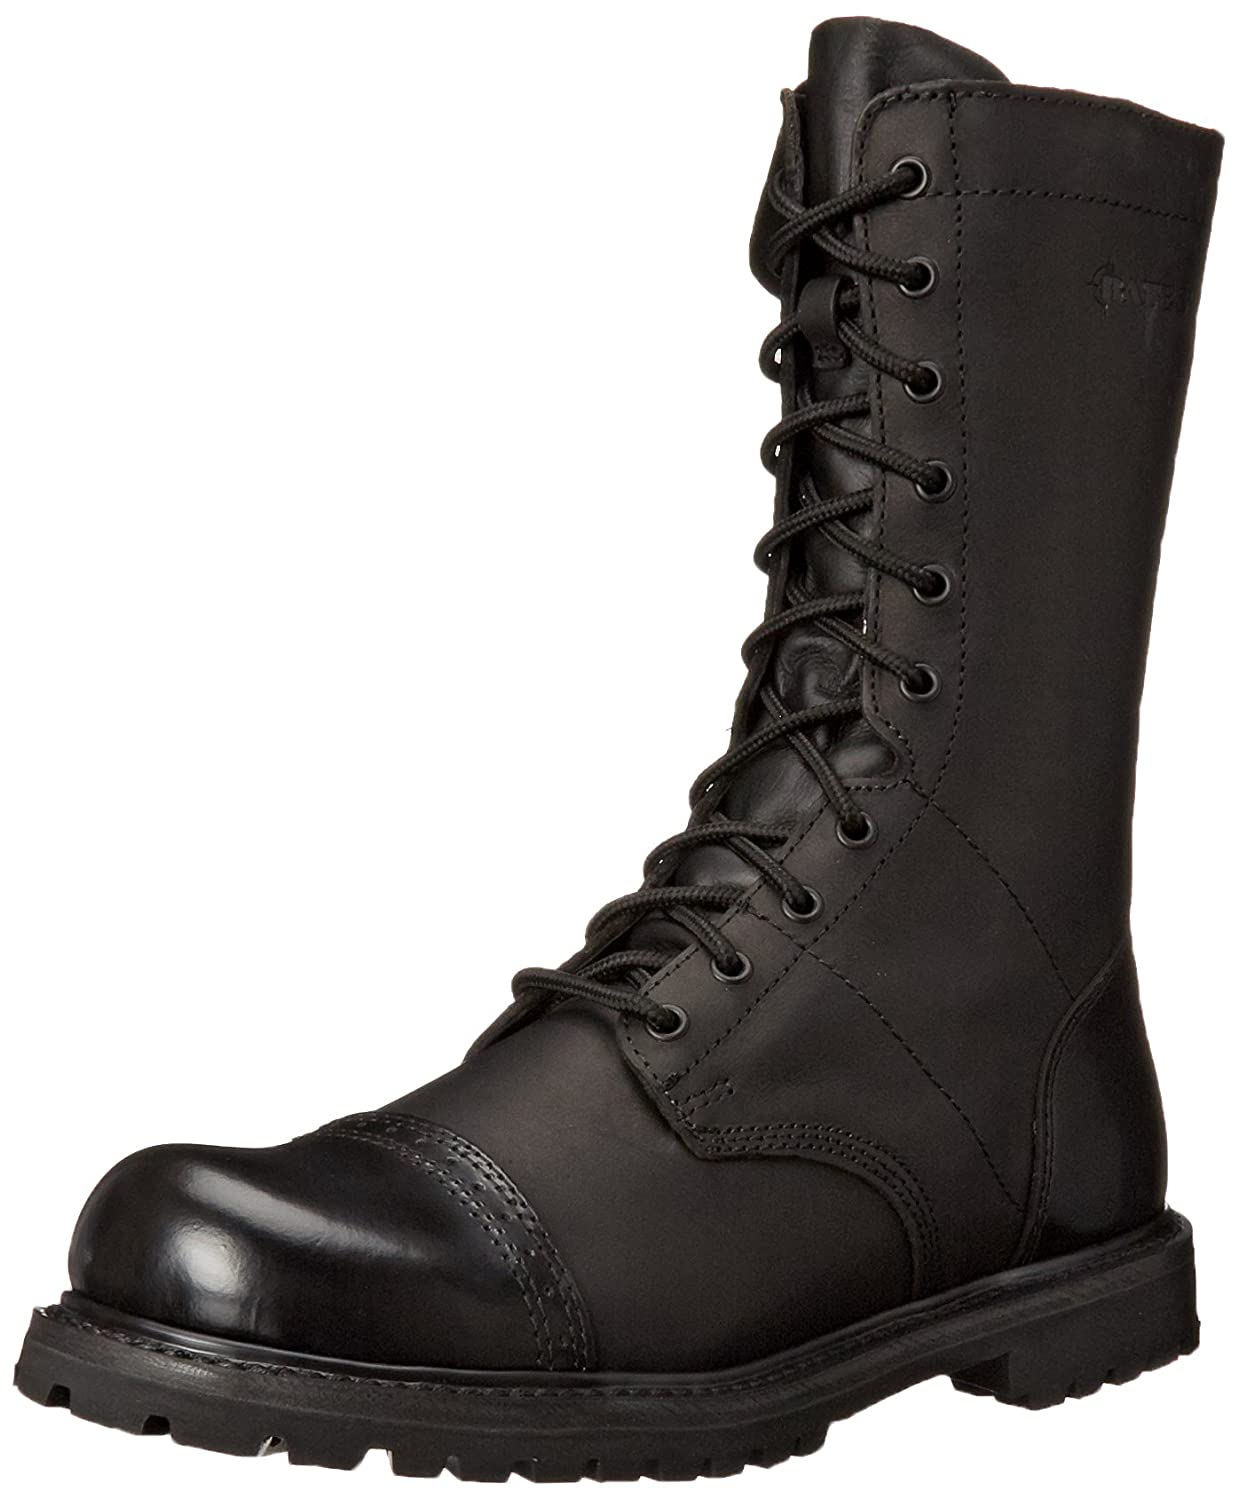 Bates Men's Enforcer 11 Inch Paratrooper Boot Bates Tactical Footwear